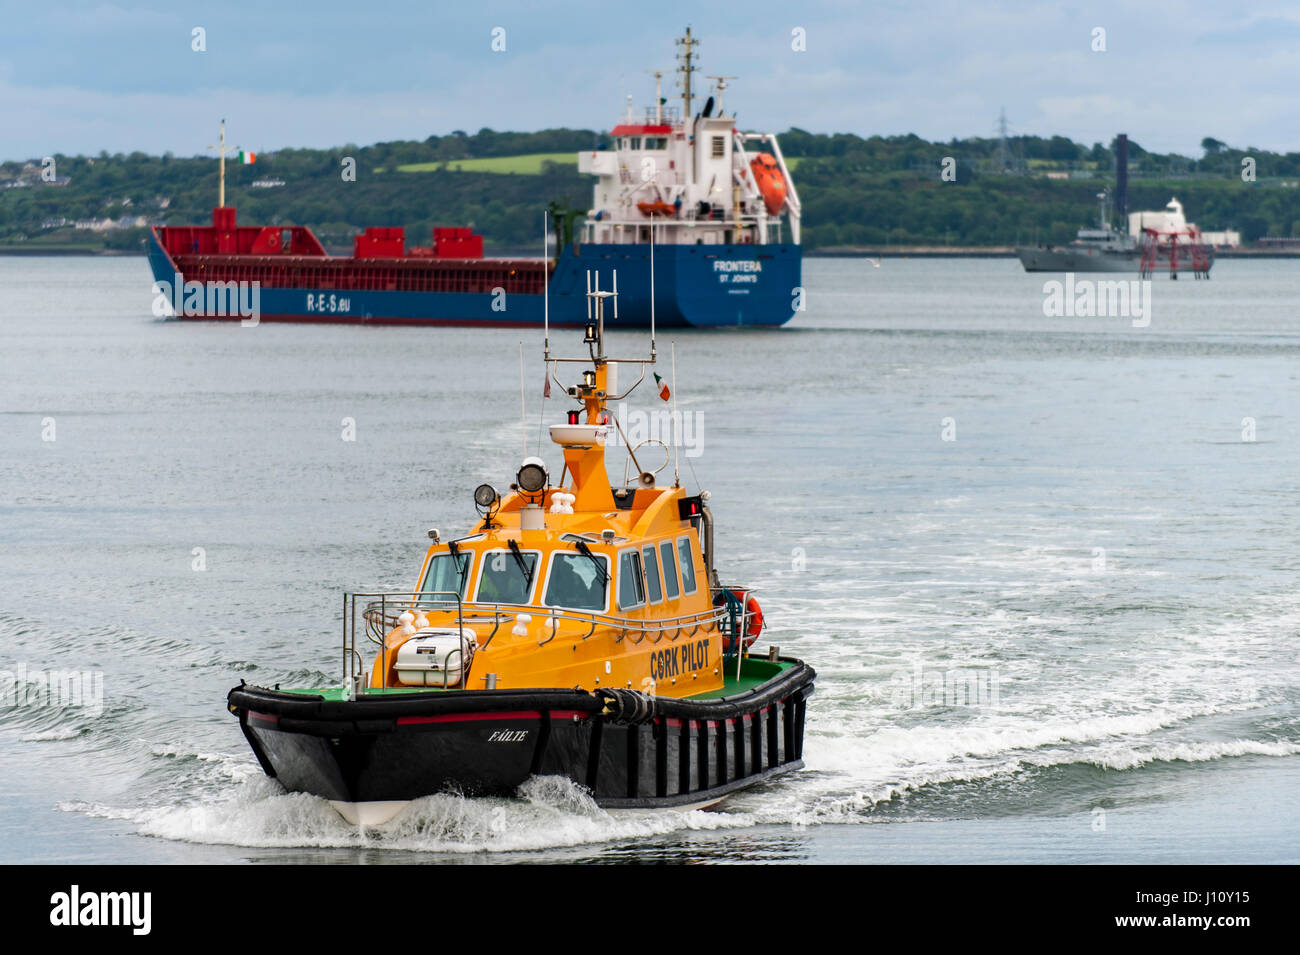 Cork Pilot boat 'Failte' approaches the dock having disembarked the pilot from general cargo ship 'Frontera' - Stock Image